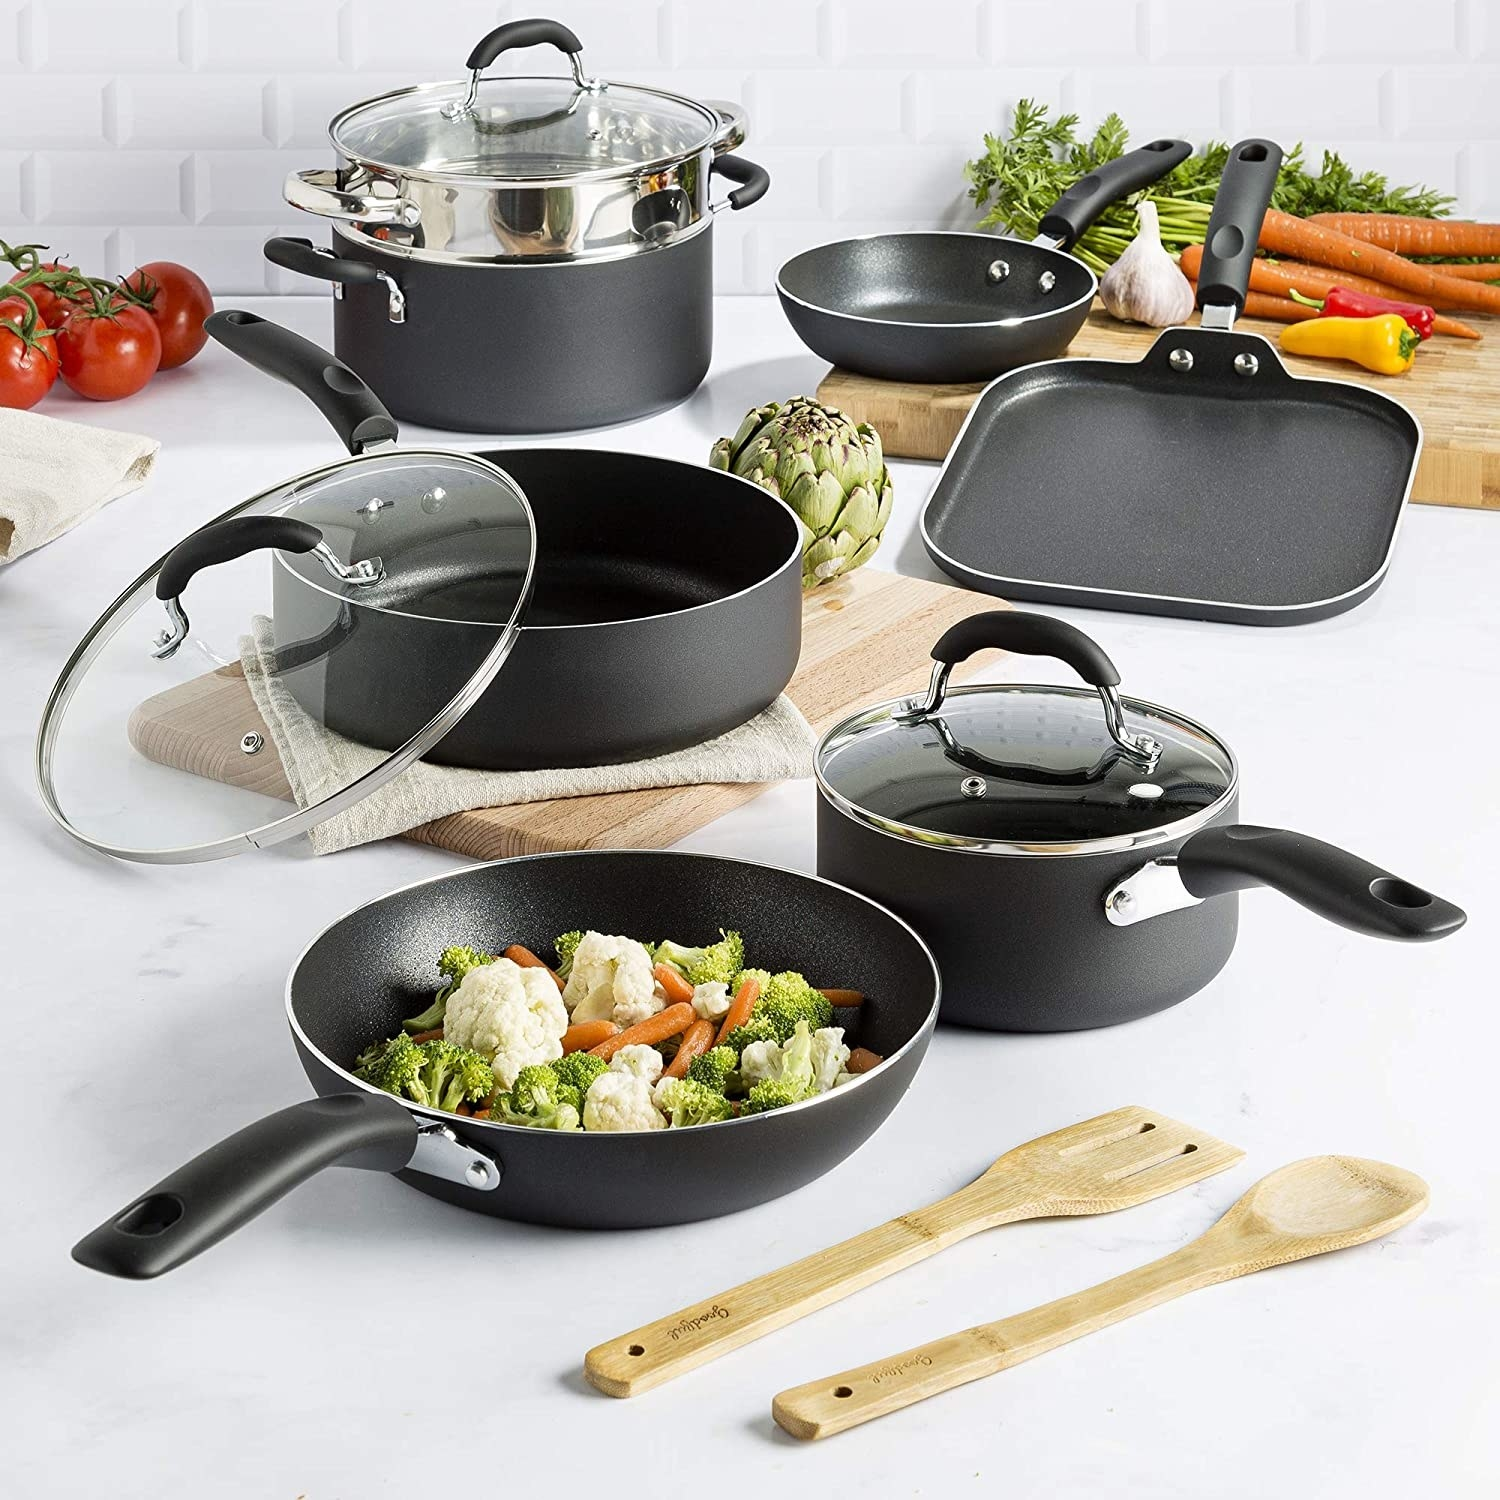 non-stick cooking set in black with all of the included items